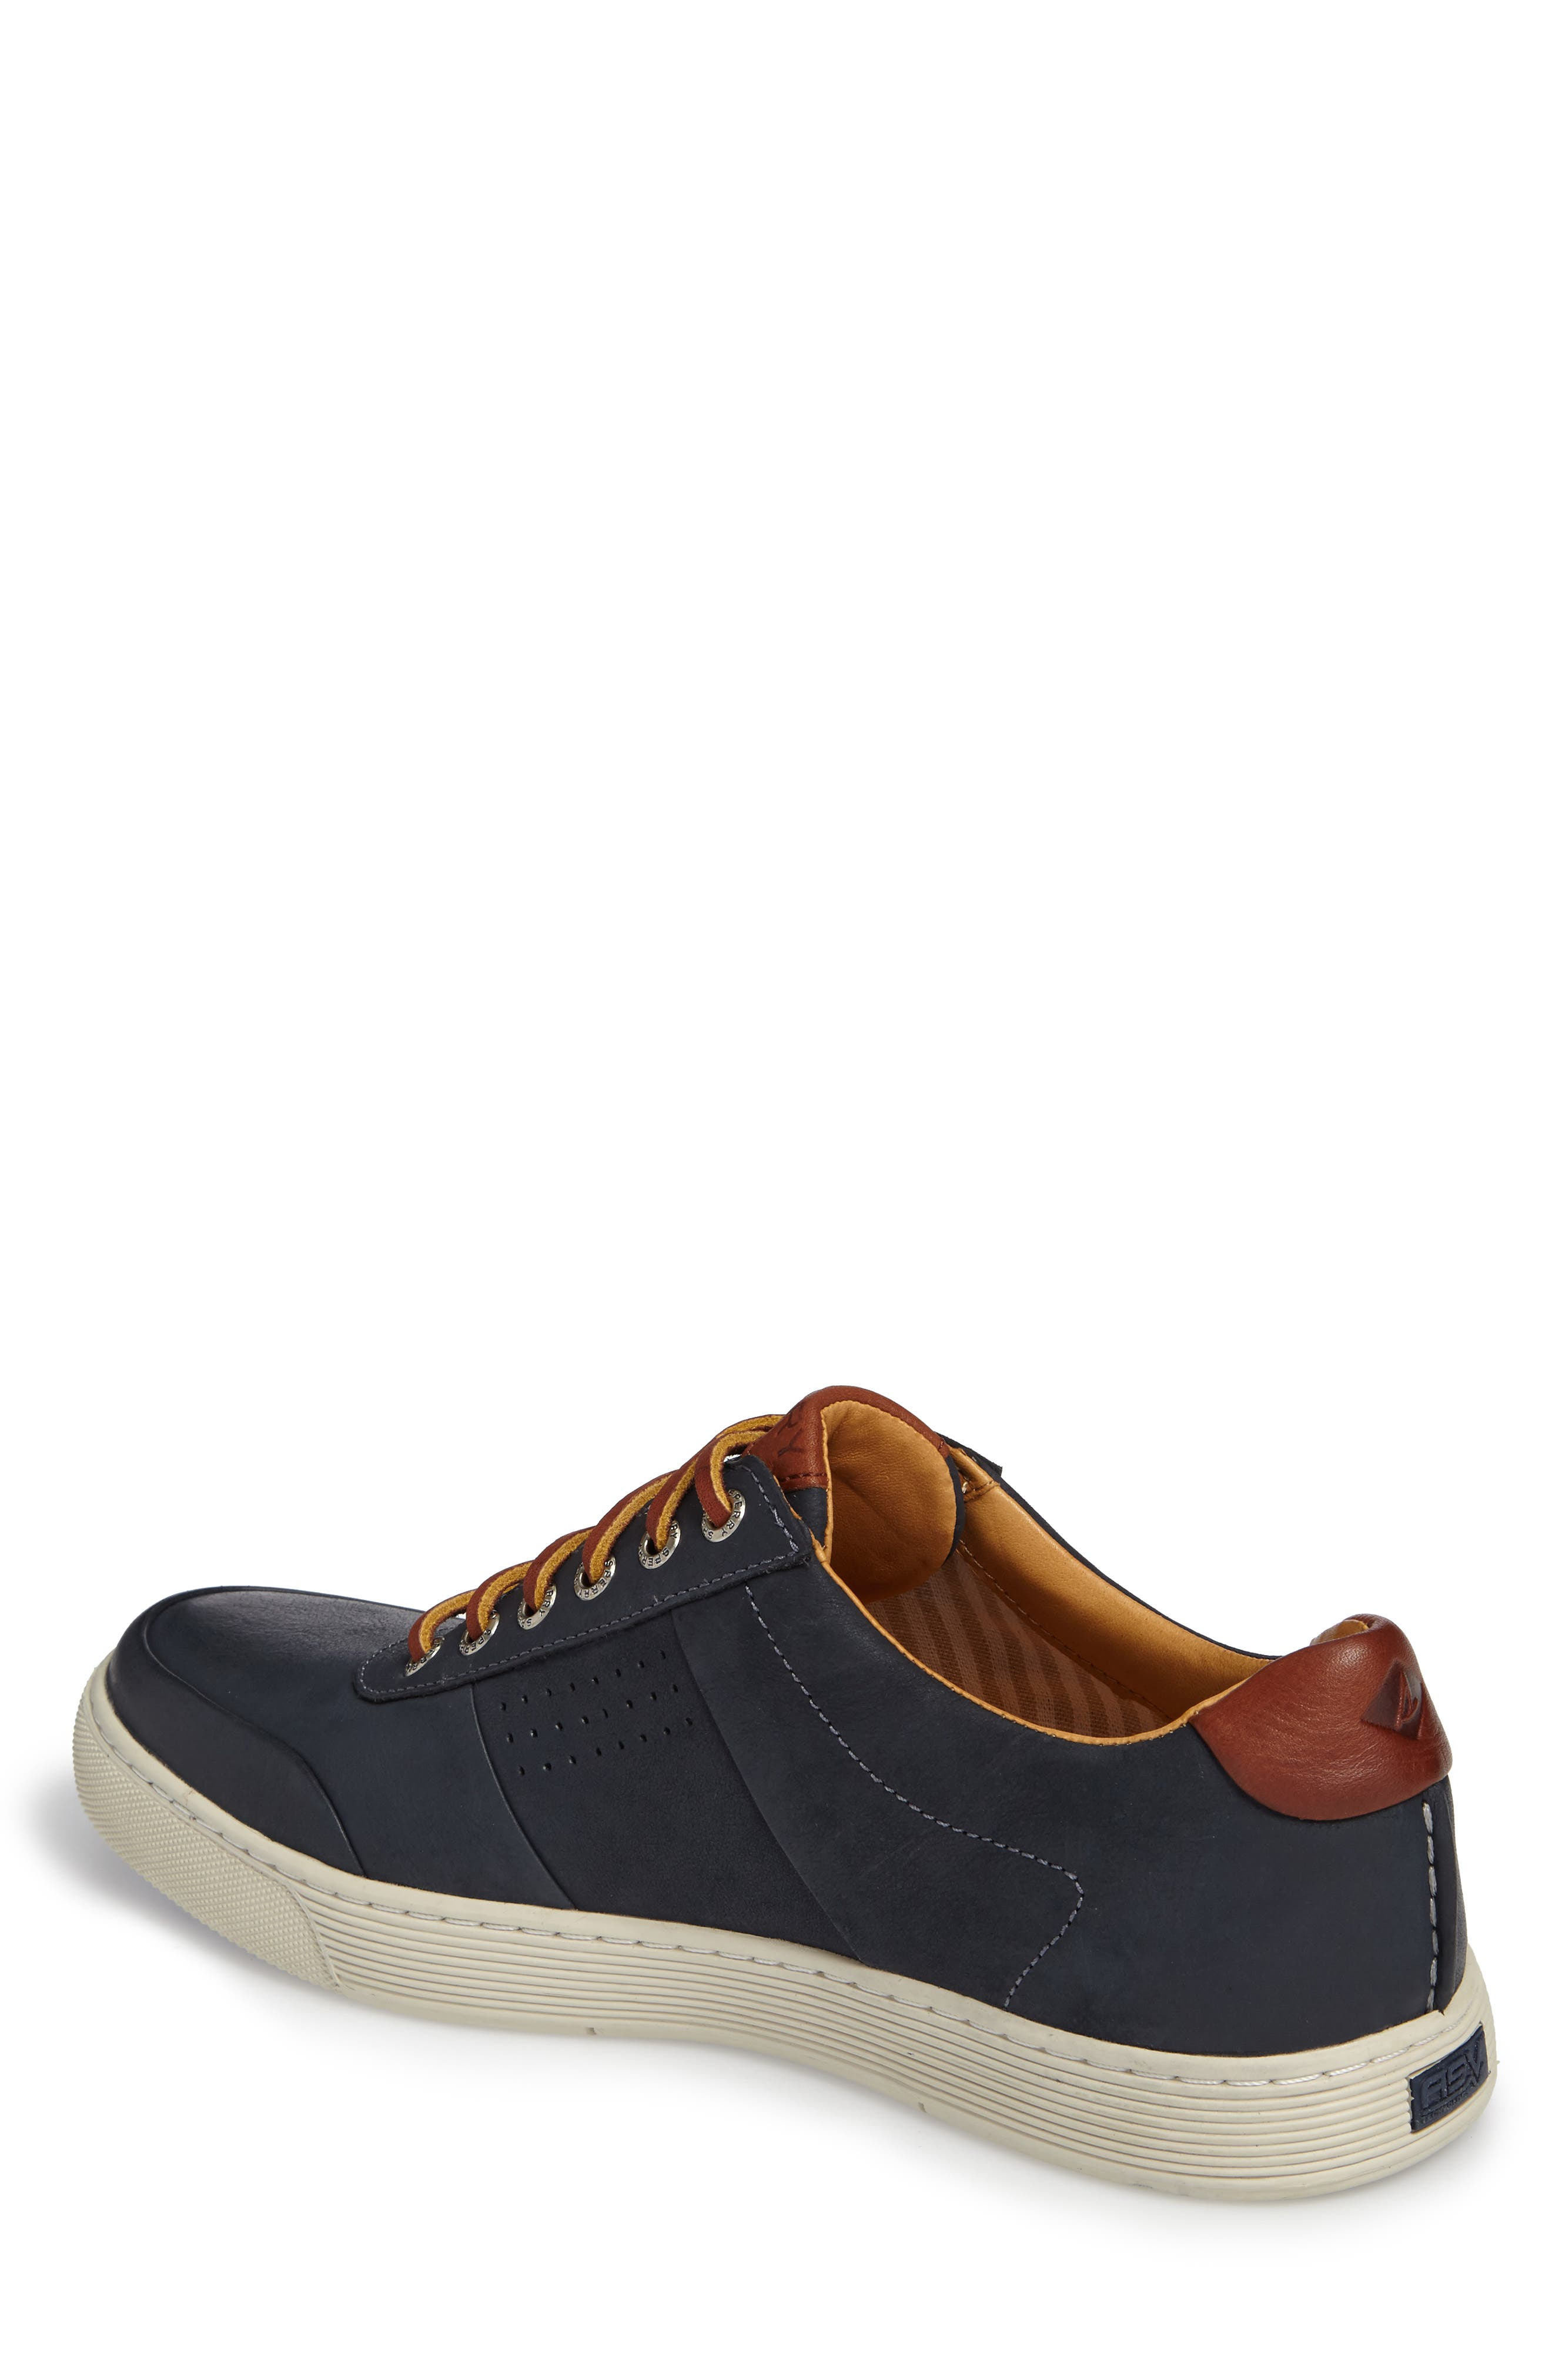 Gold Cup Sport Sneaker,                             Alternate thumbnail 2, color,                             410